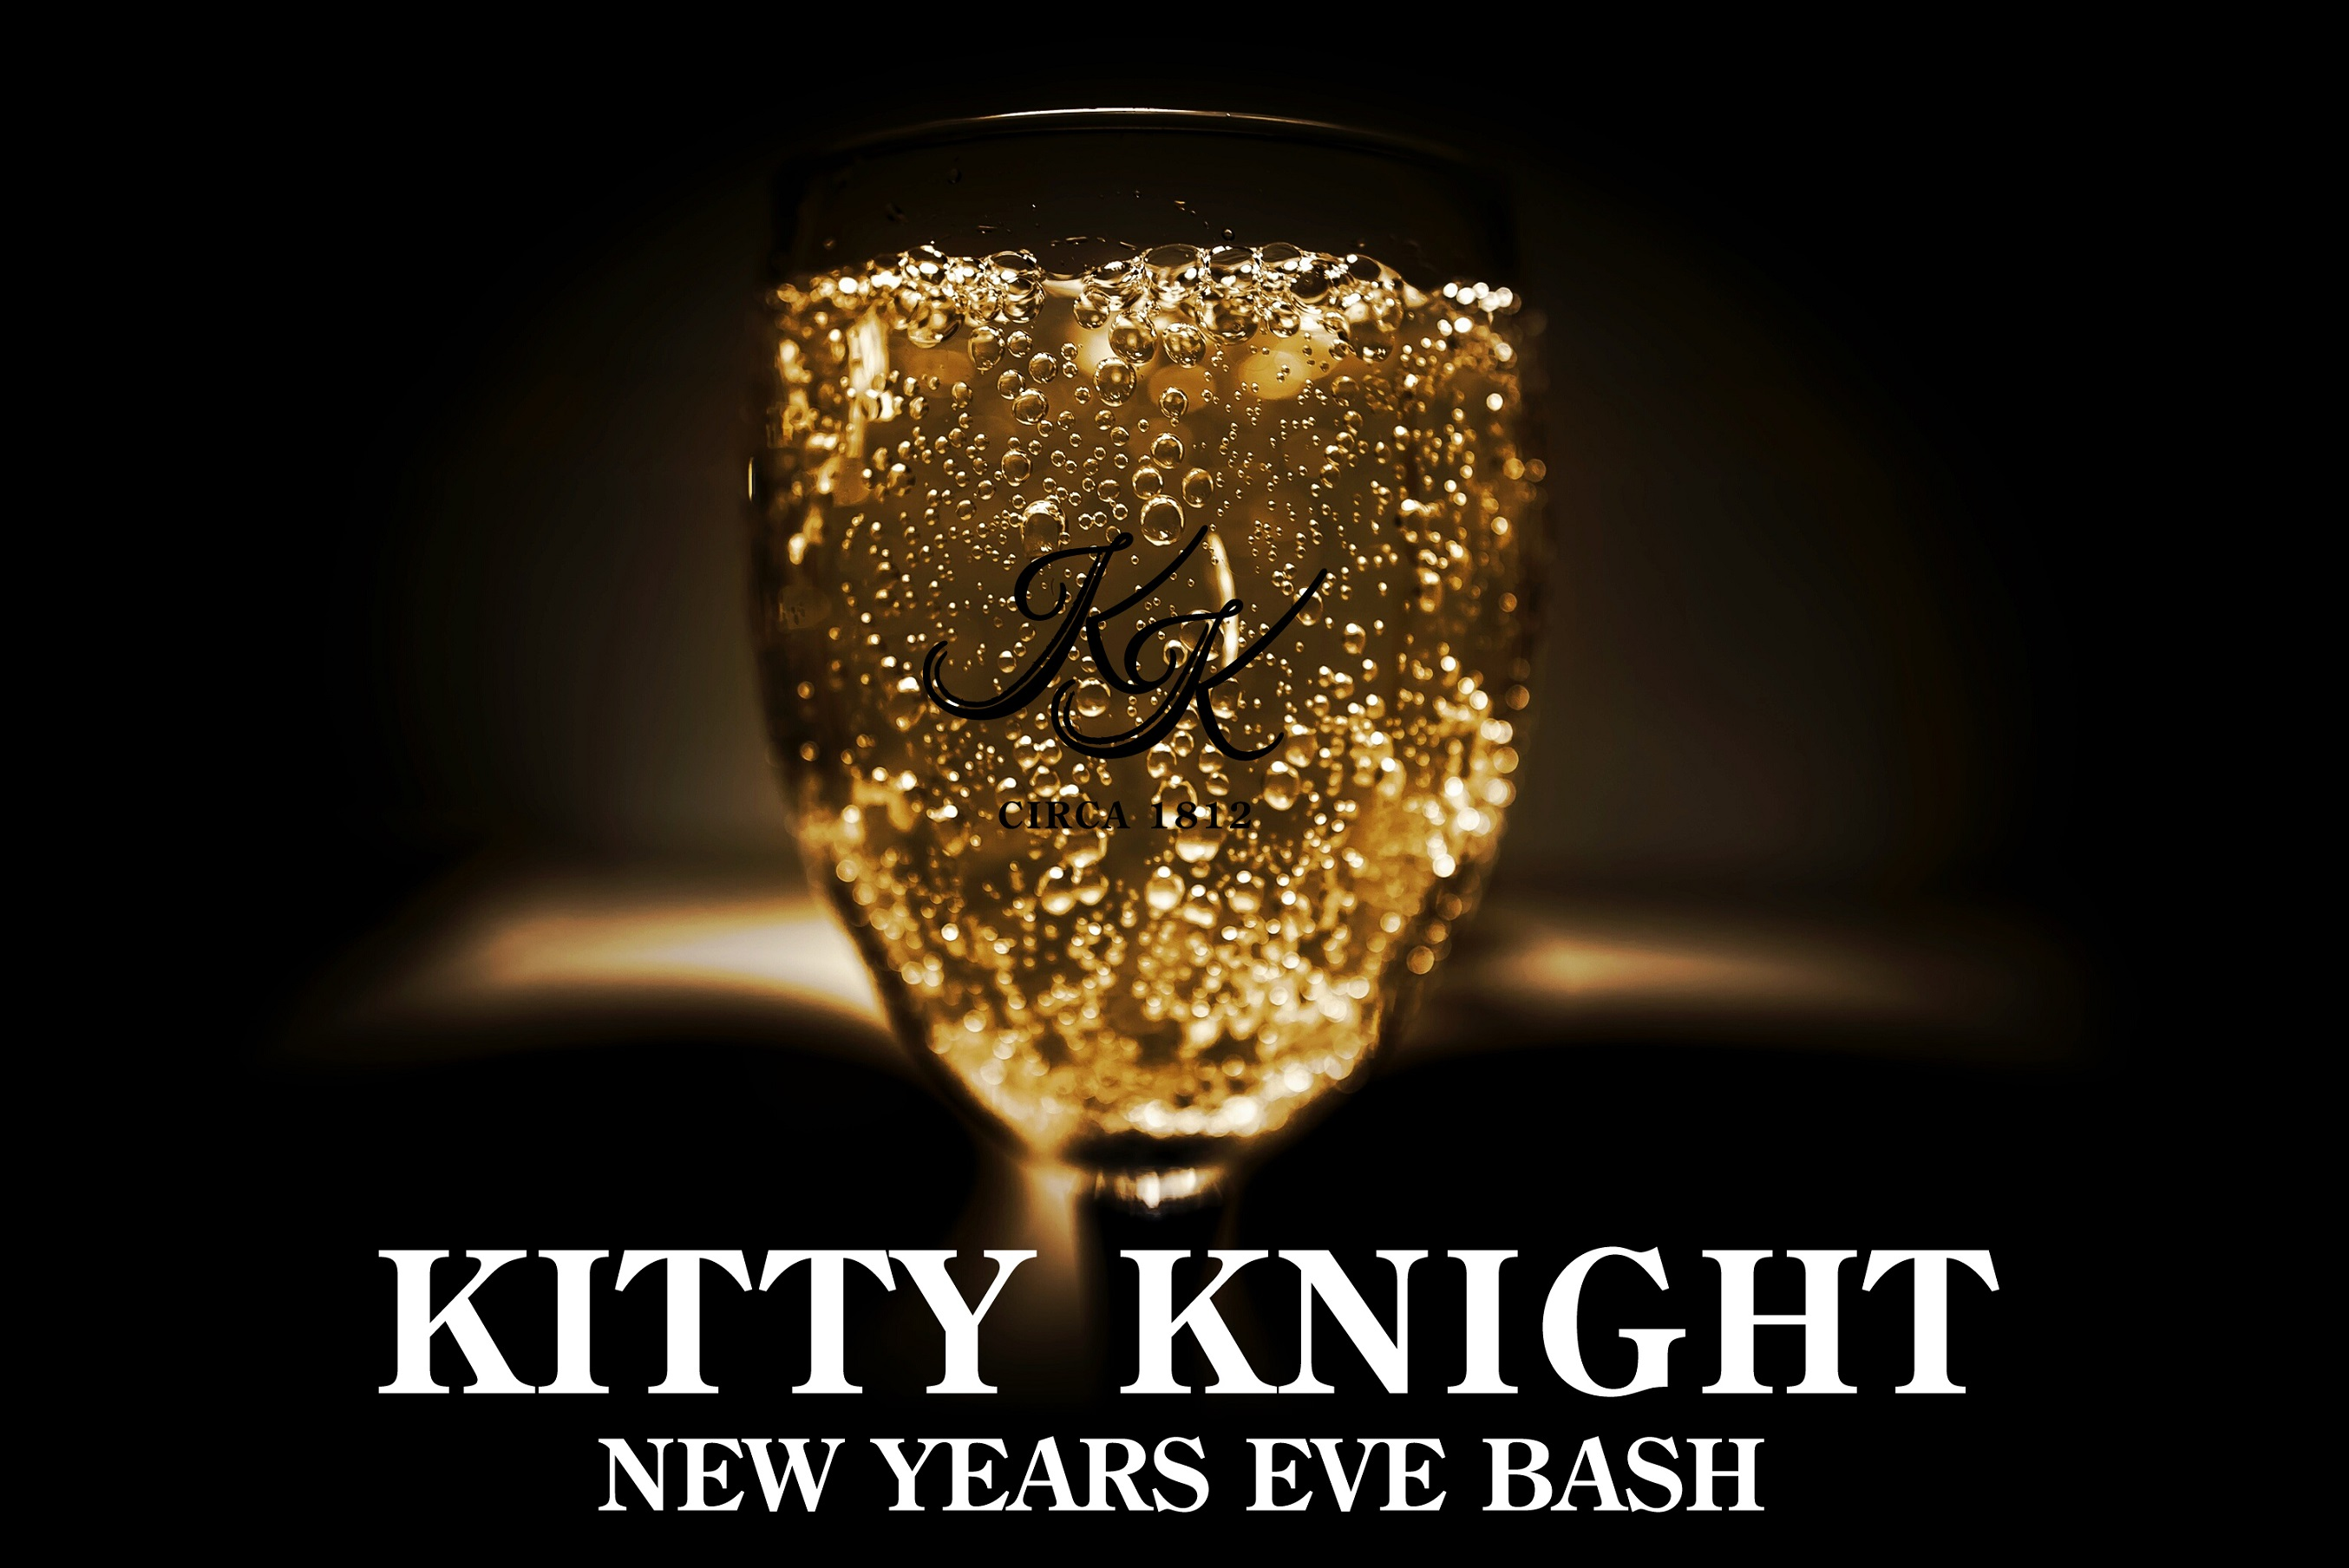 Kitty Knight New Year's Eve Bash